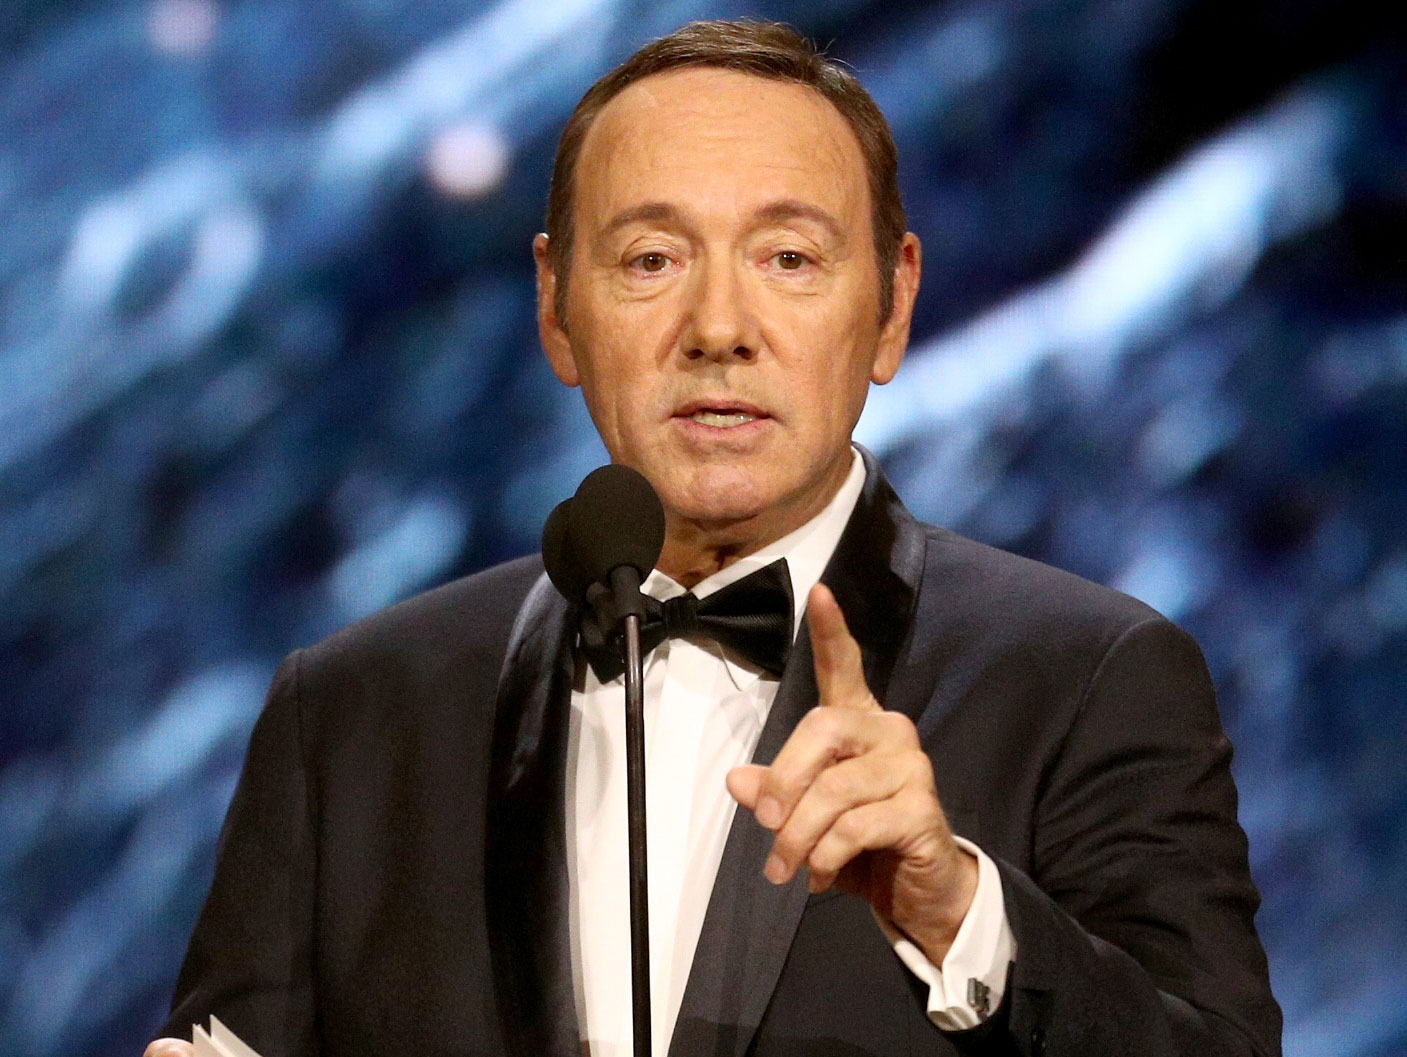 Kevin spacey slammed came gay man distract sexual assault scandal